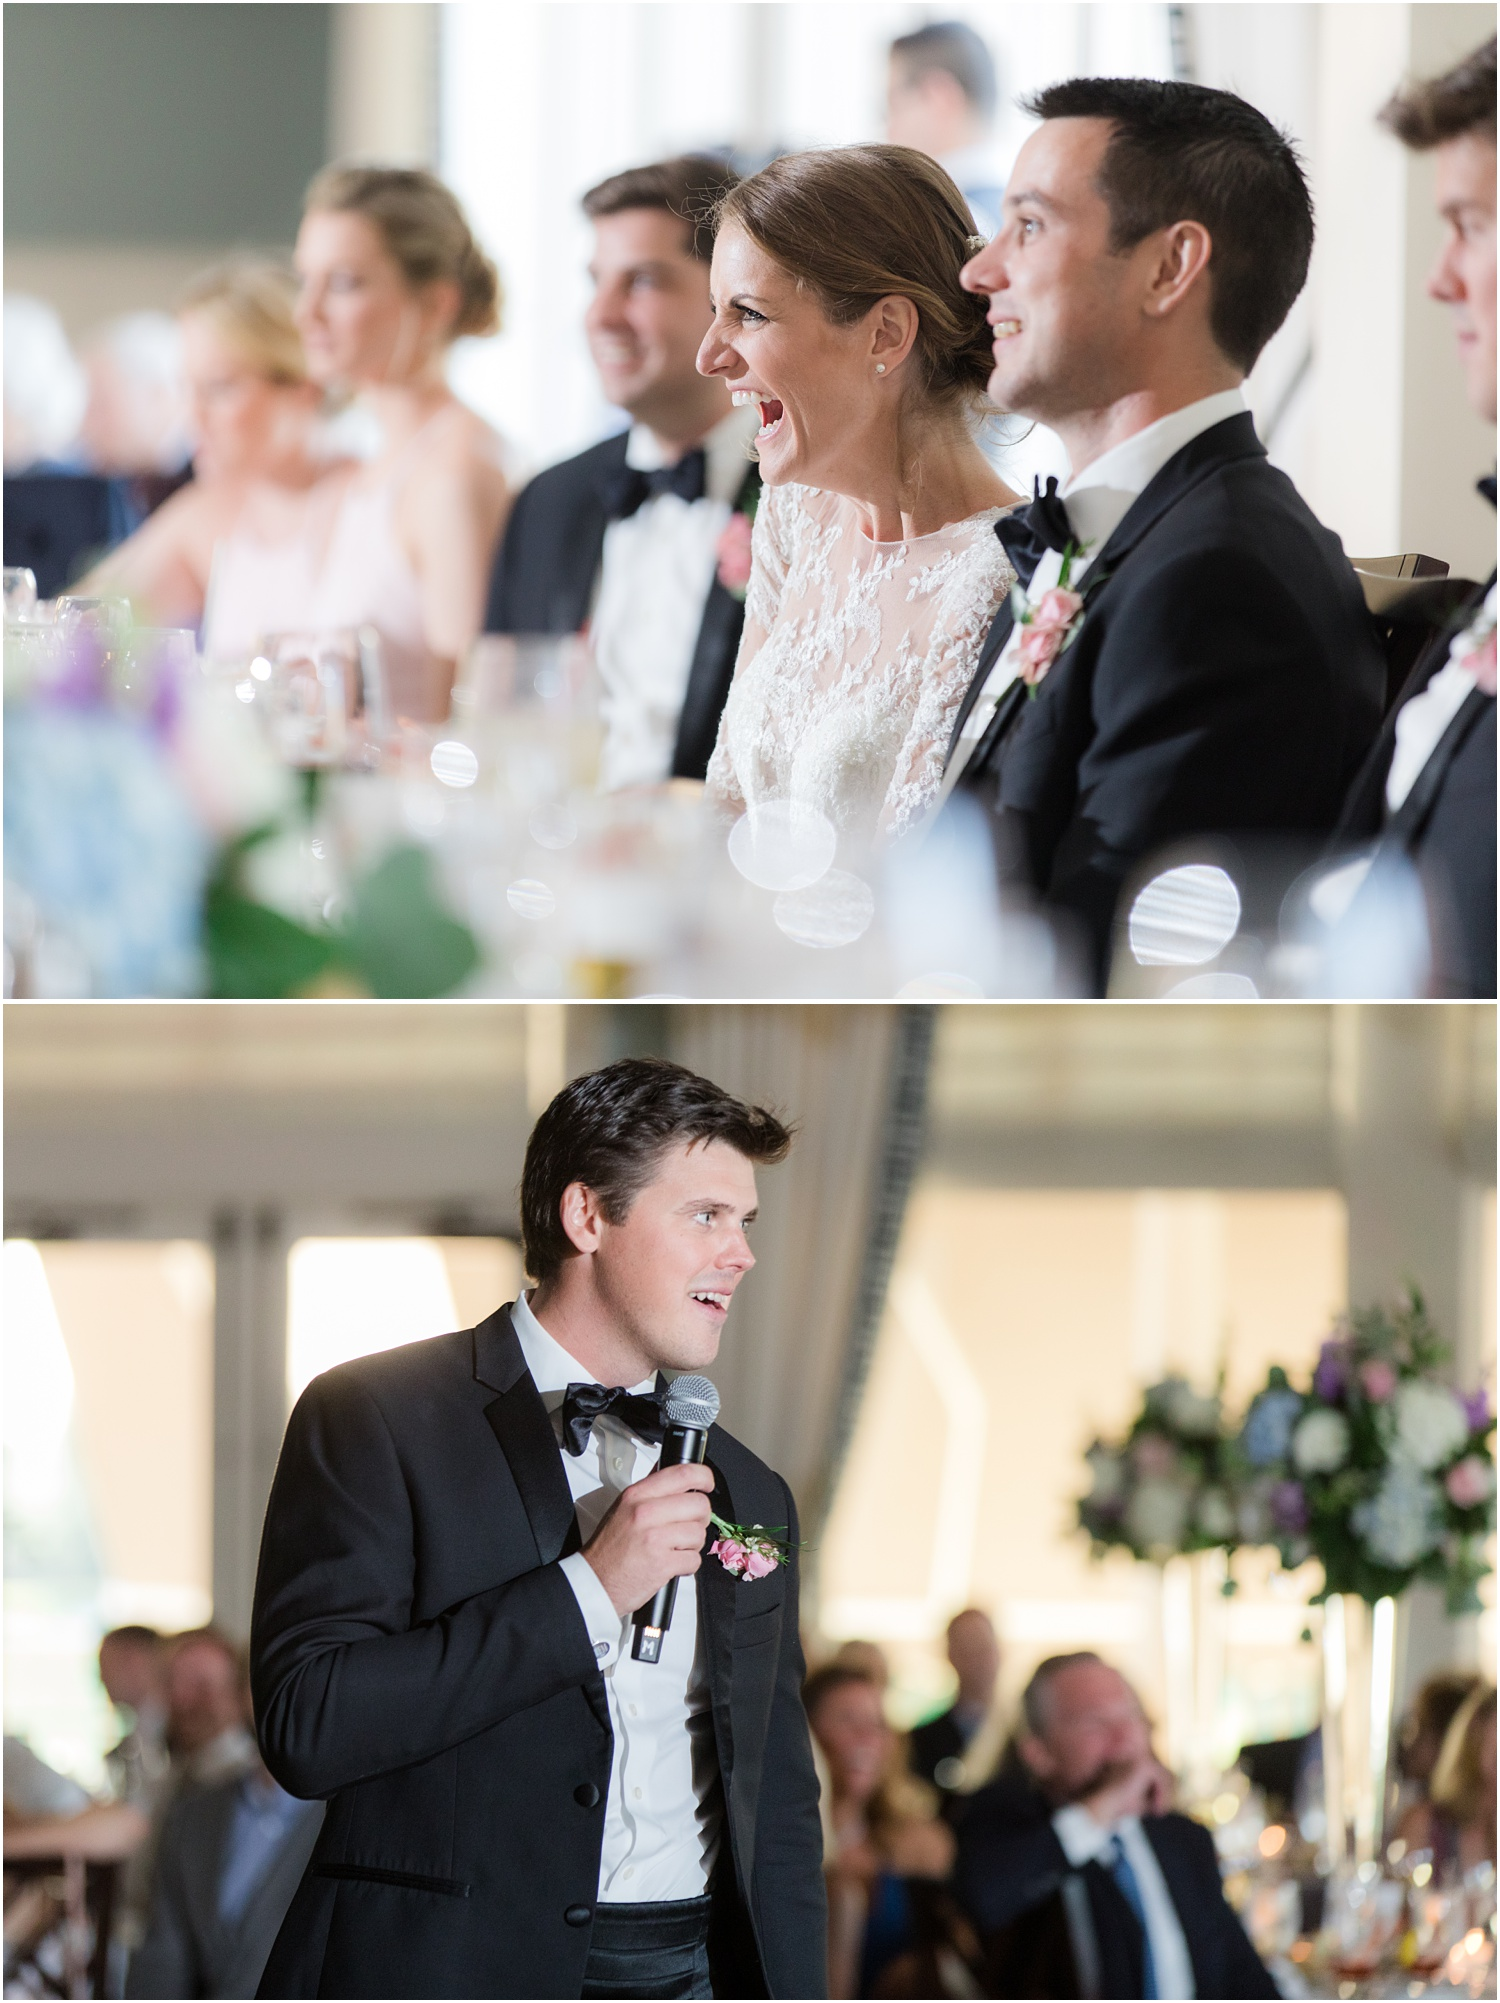 Best man speech at Wedding reception at Canoe Brook Country Club in Summit, NJ.